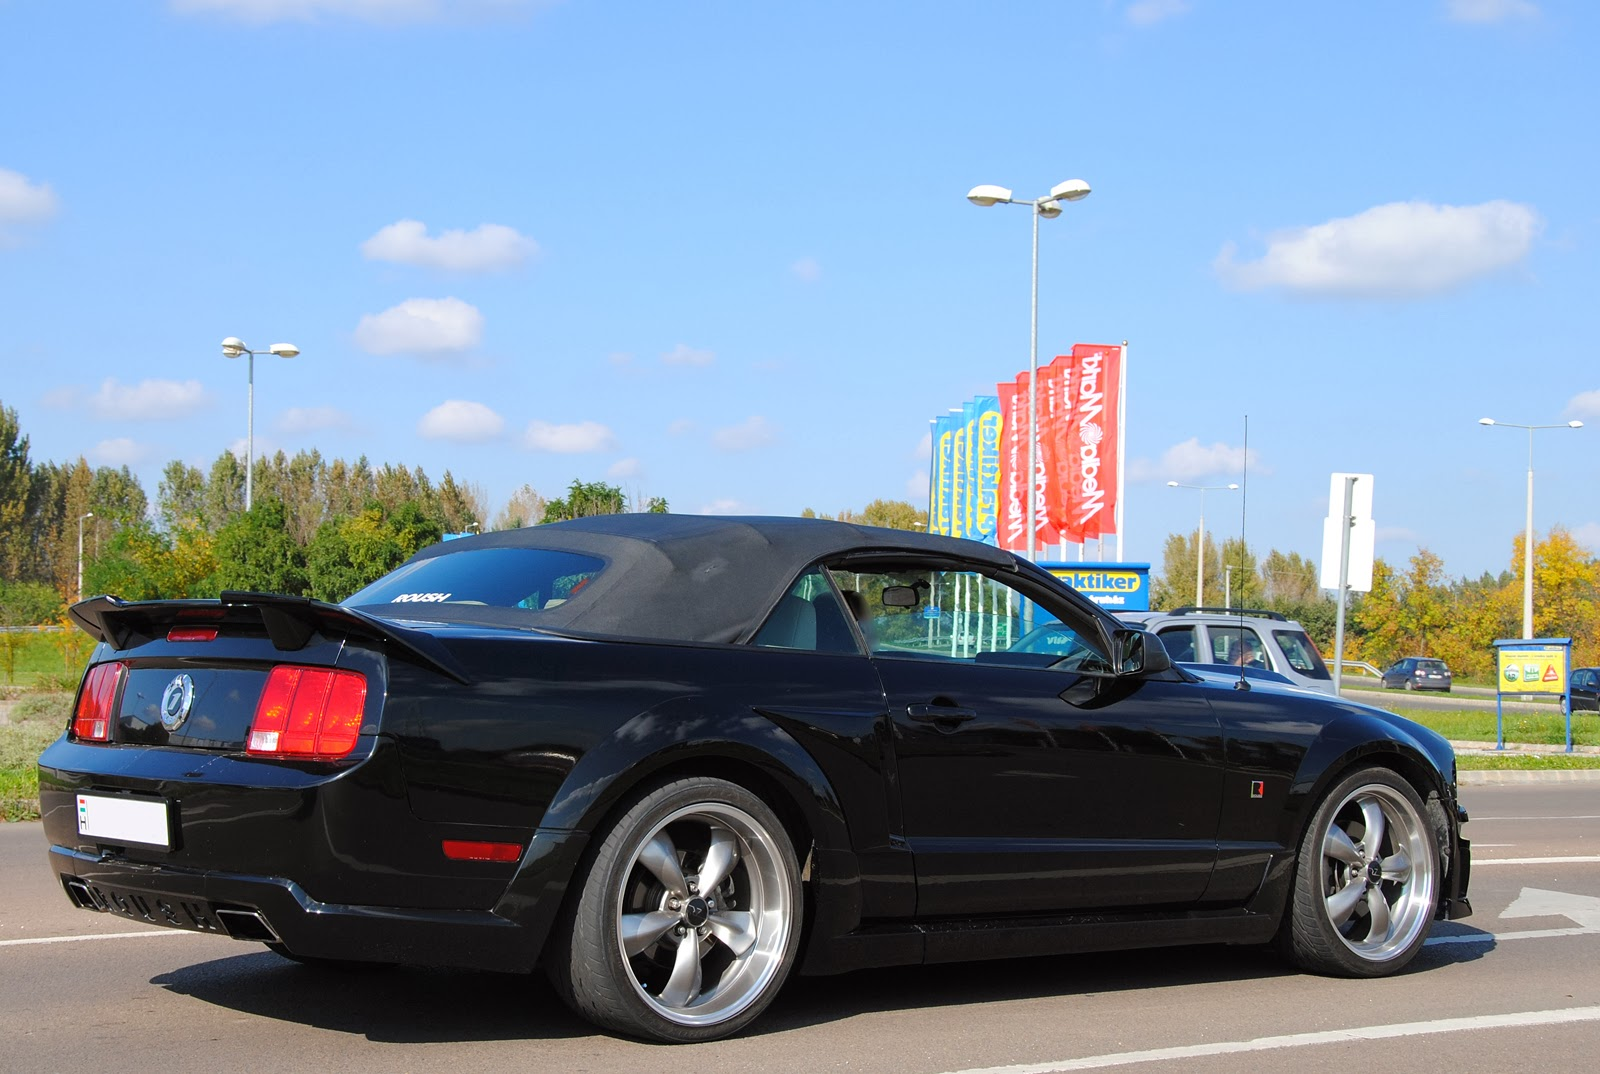 Ford Mustang Roush Stage 1 Convertible Supercars In Szolnok